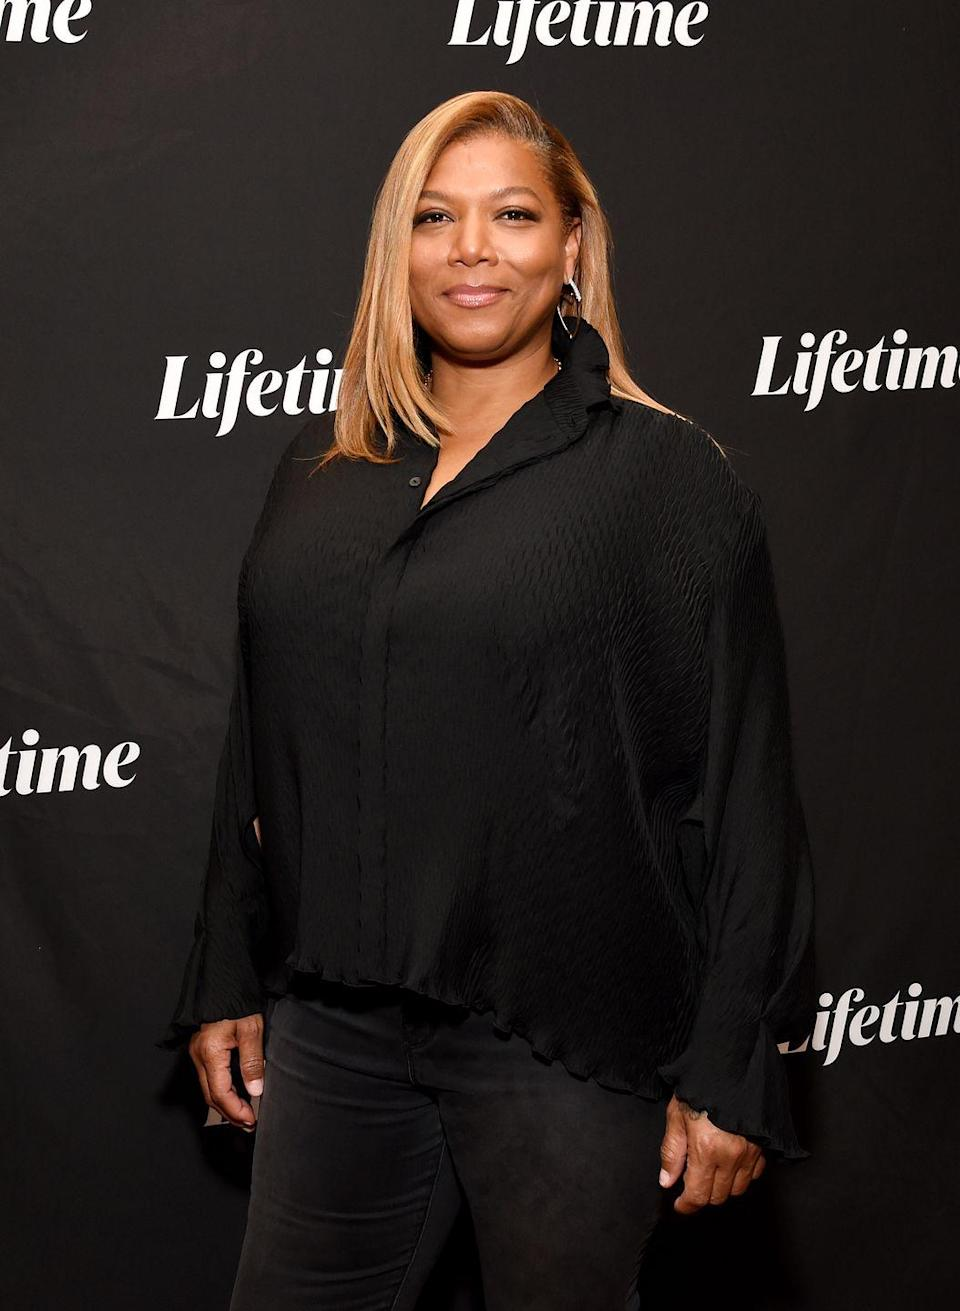 <p>The queen of gorgeous hair rocks this classic caramel-toned look with gold streaks. This season, give yourself permission to ditch the darker hues and lean into fall hair colors that warm up your complexion, like<strong> Queen Latifah</strong>.</p>